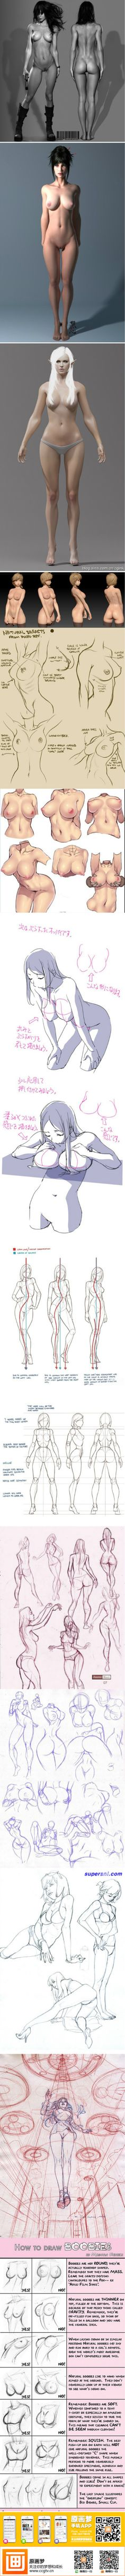 Detailed female anatomy for artists...